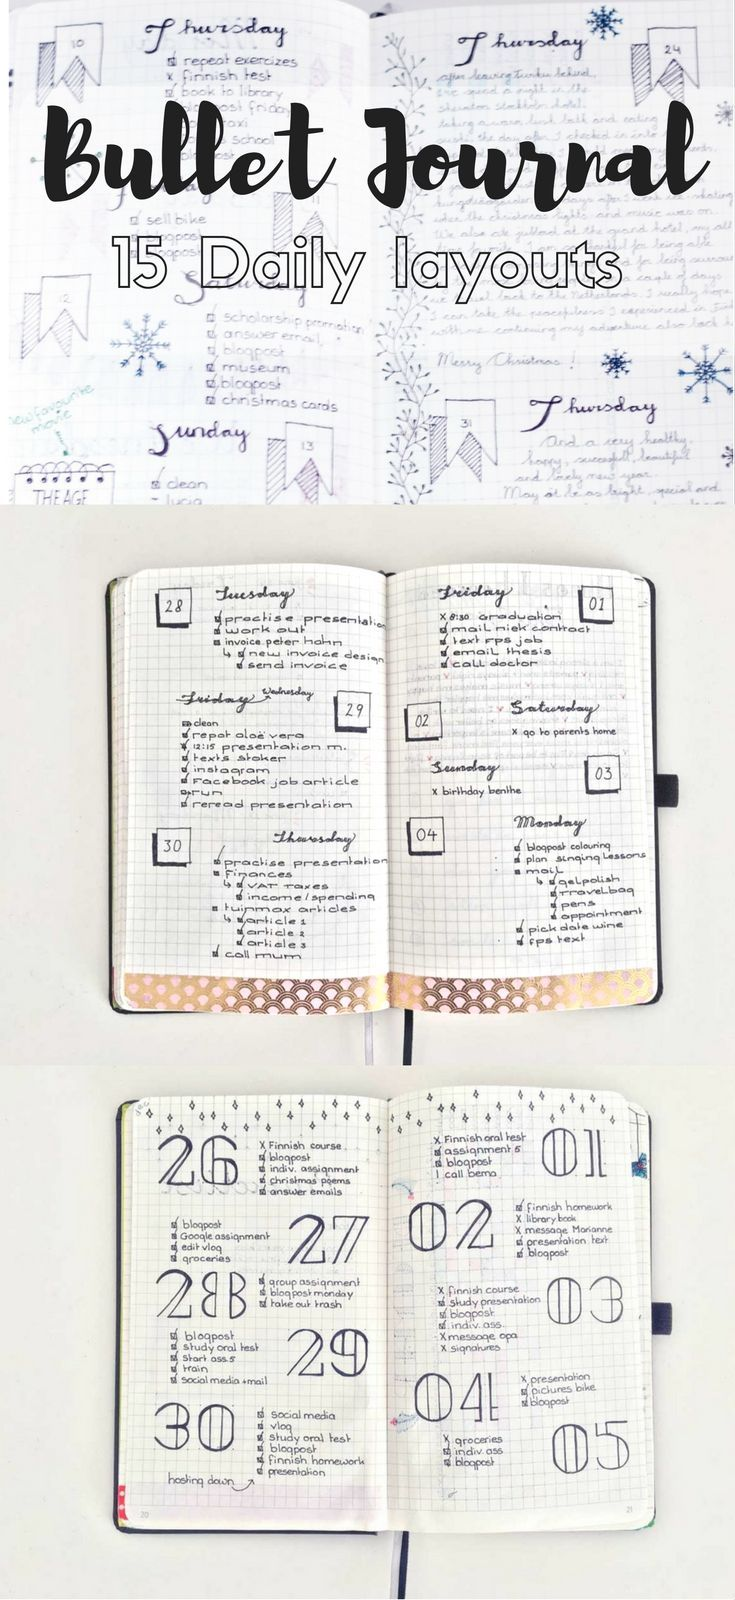 15 diffferent daily layouts for the bullet journal bullet